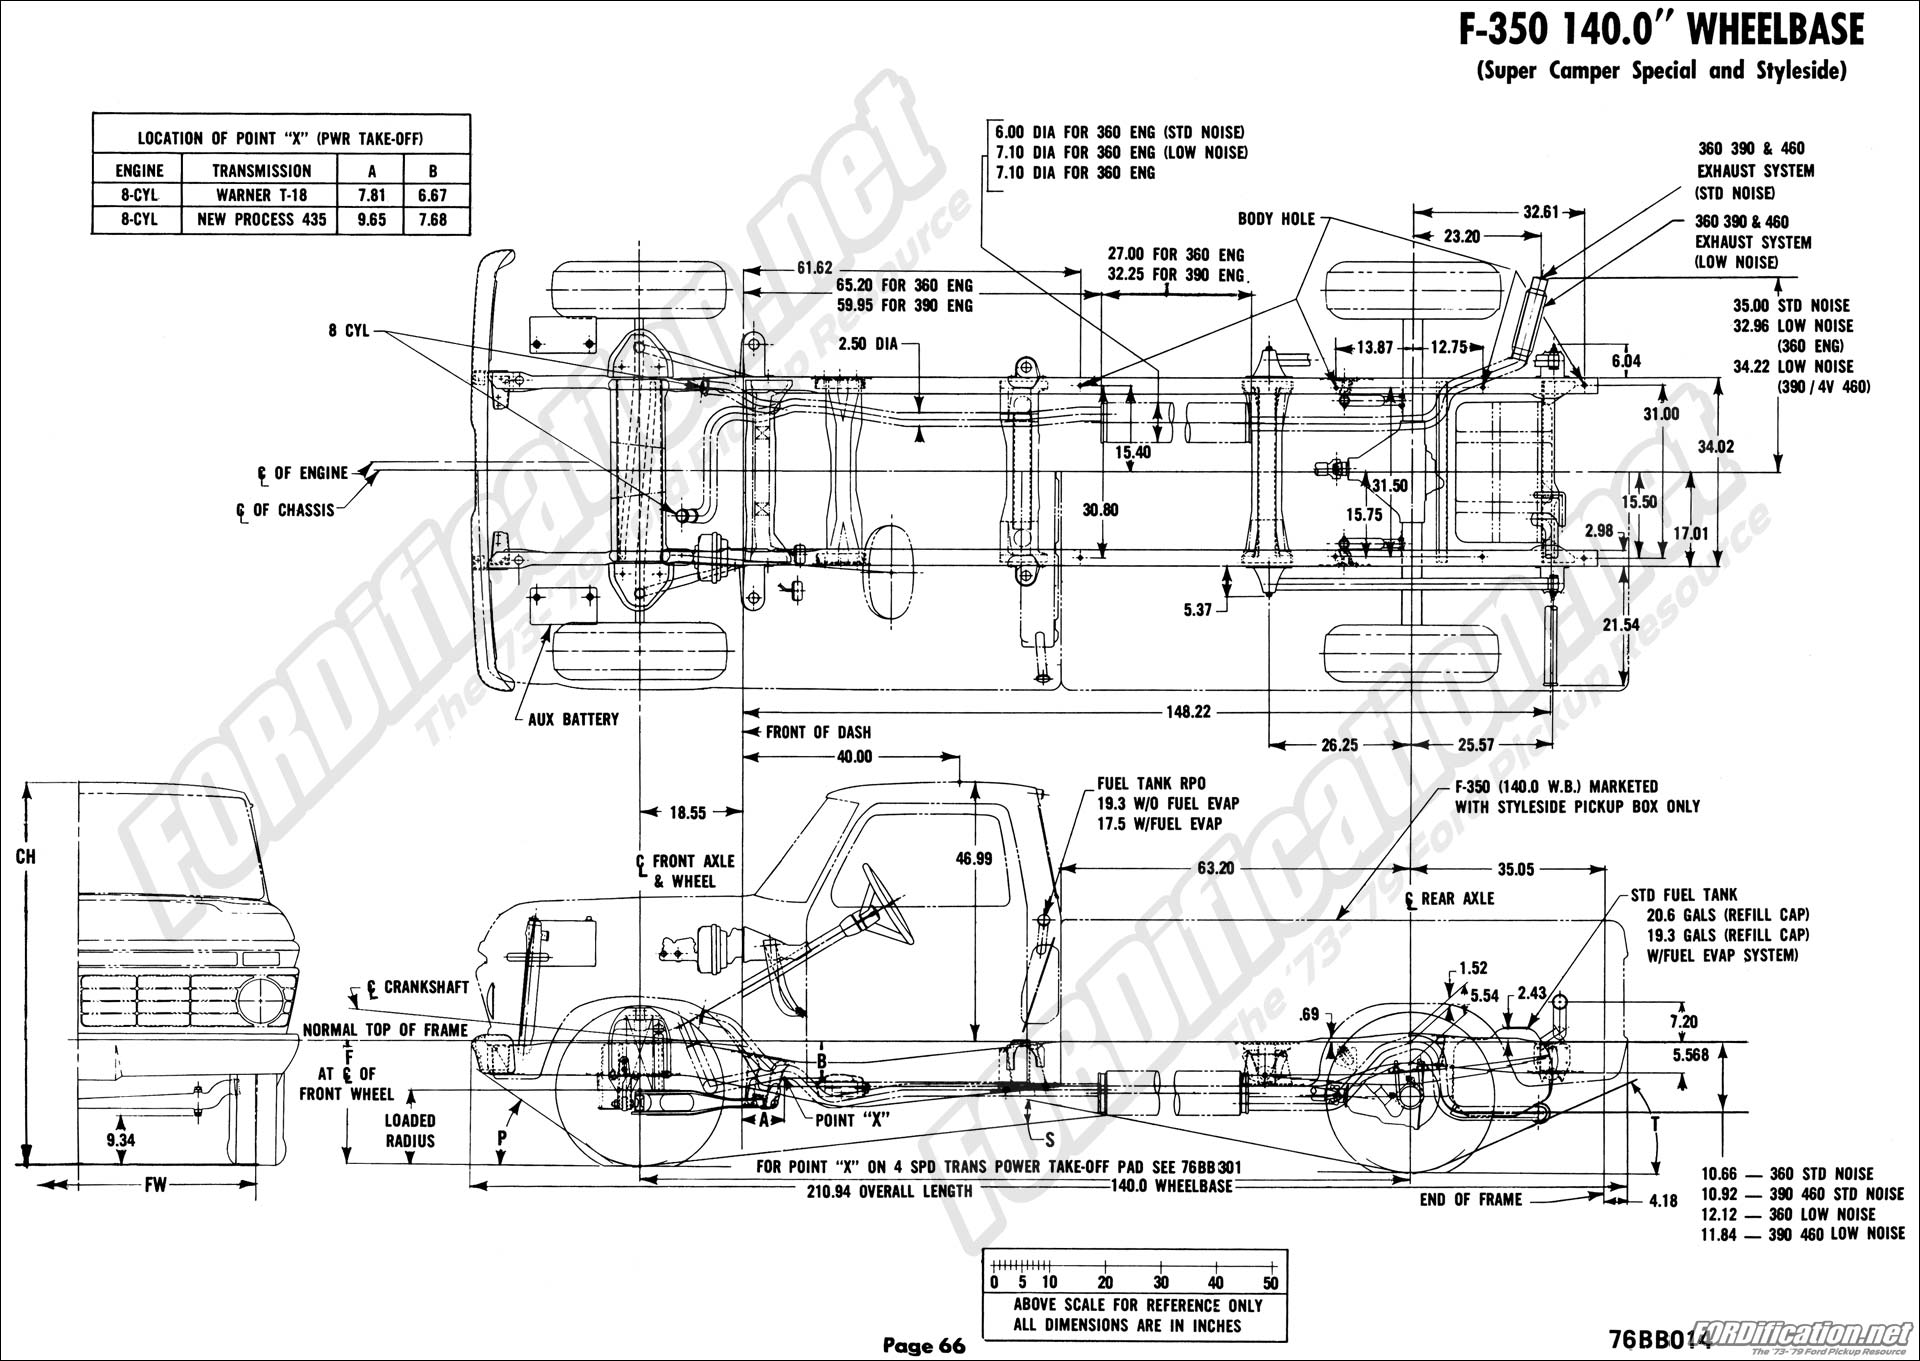 1998 Gmc Sierra 1500 Wiring Diagram furthermore True further Mustang Wiring Diagrams further Dodge Neon Strut Diagram together with Discussion T21248 ds598574. on 1998 dodge ram 1500 specs